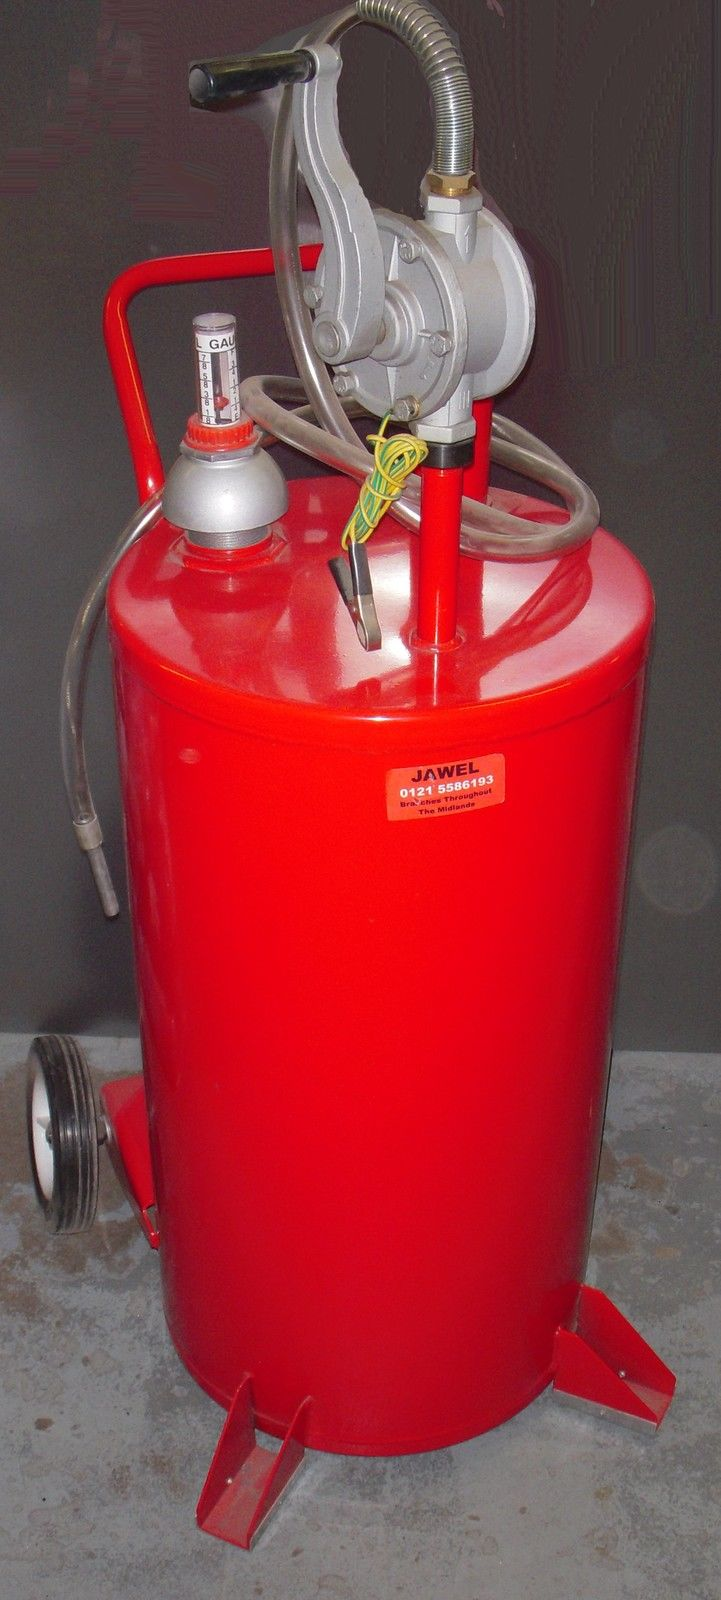 Oil Drainer 25 Gallon Tank Mobile